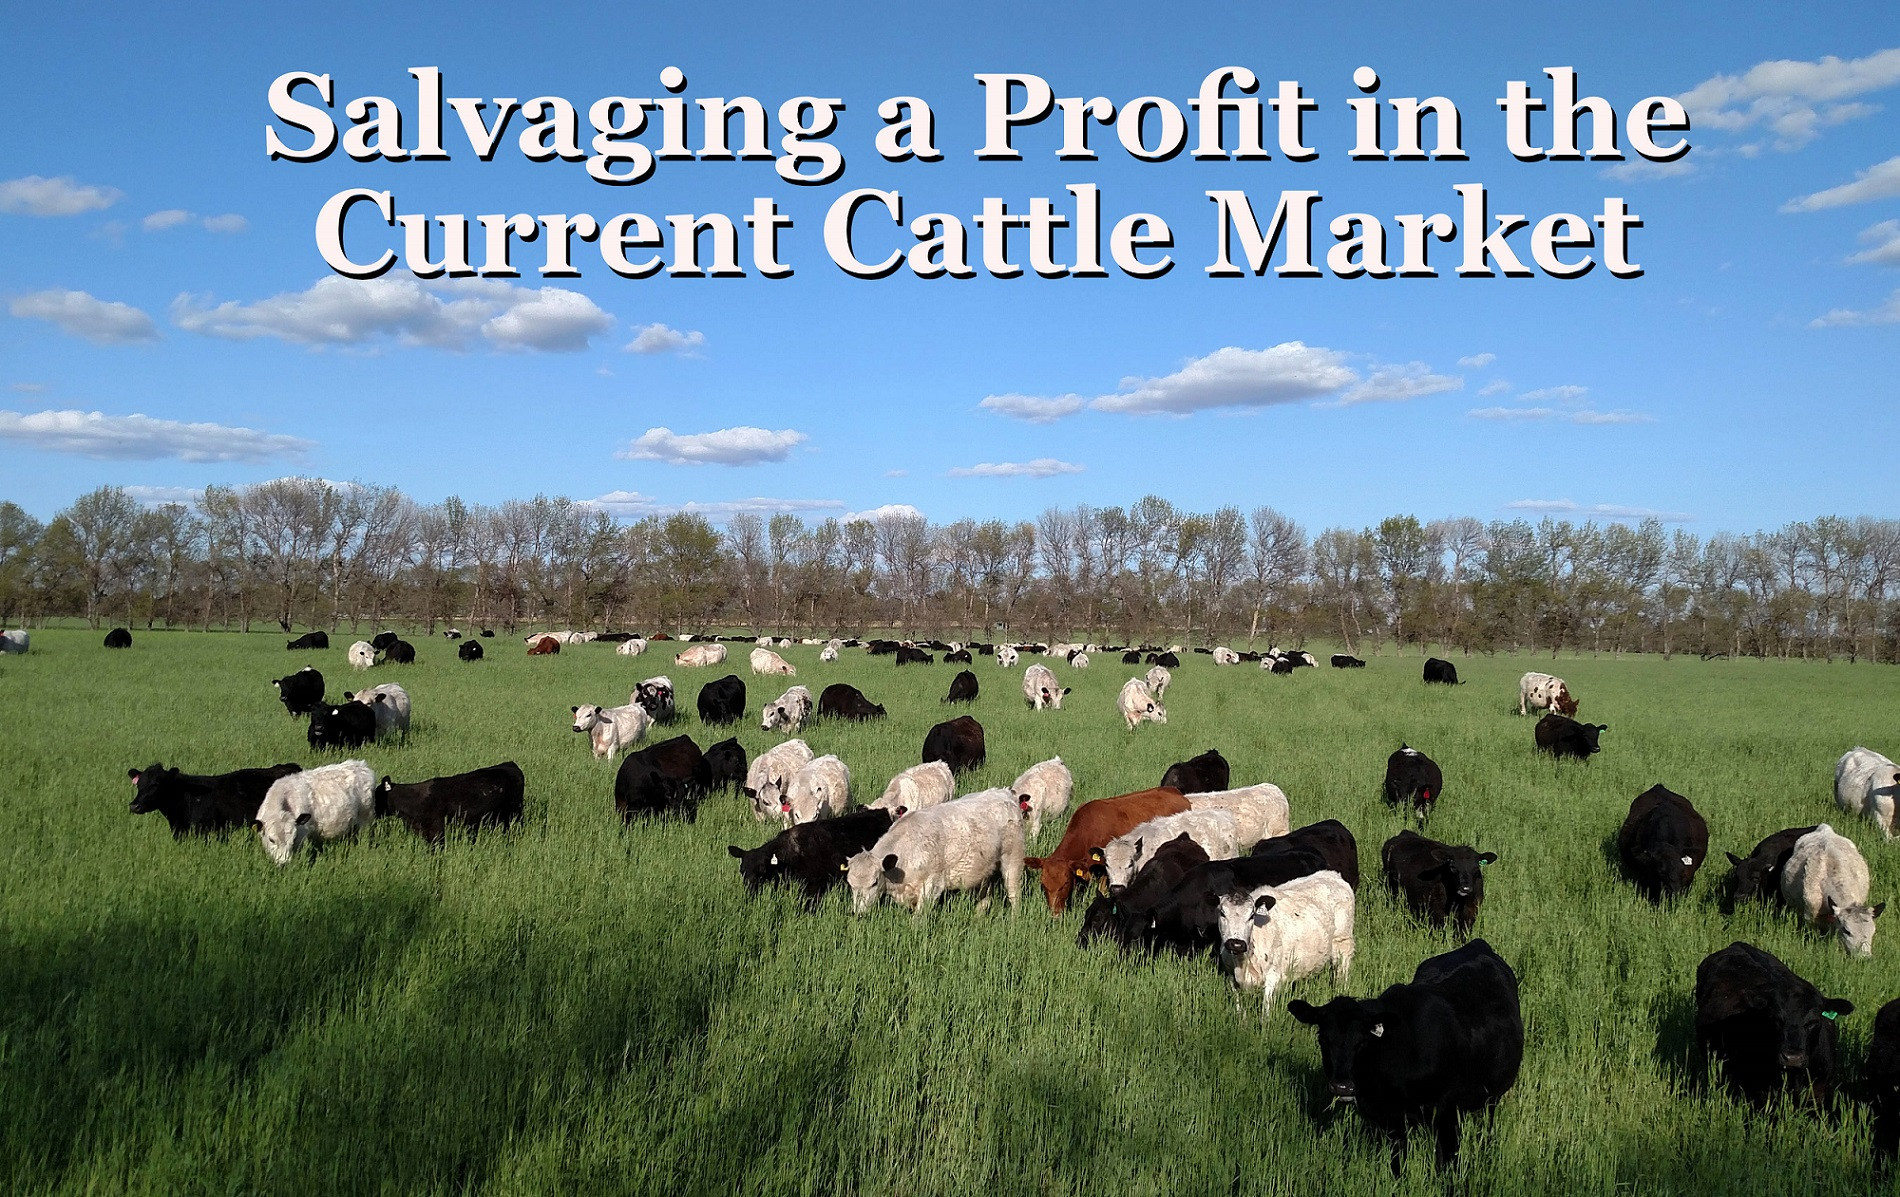 Salvaging a Profit in the Current Cattle Market